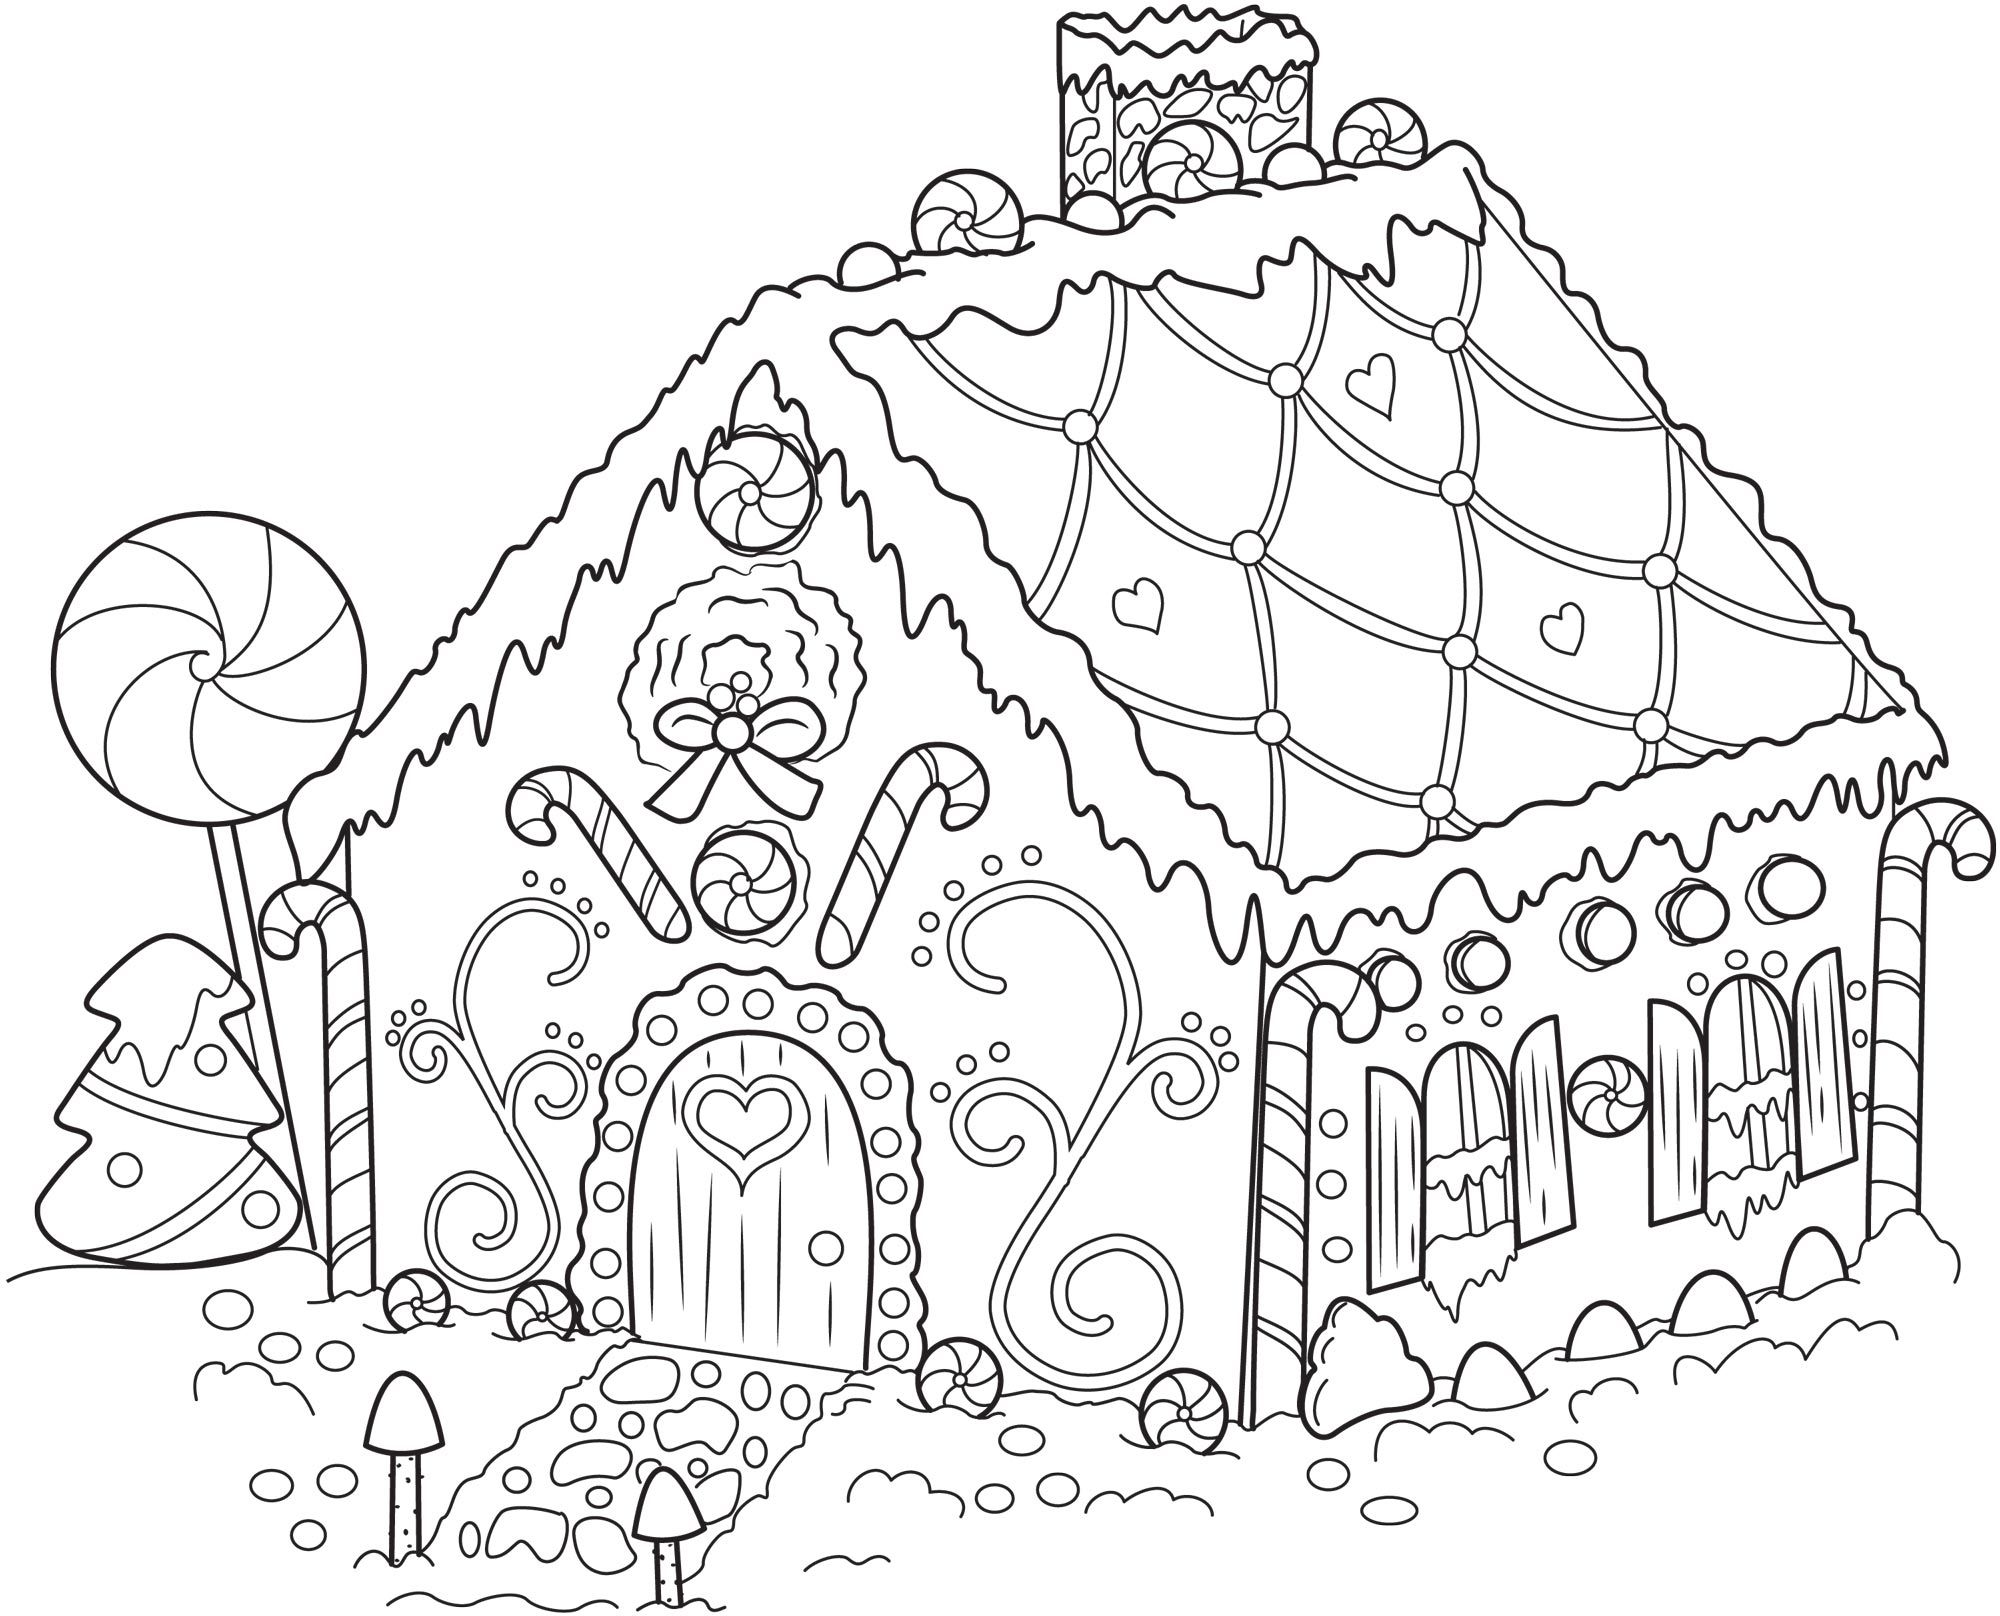 Princess house coloring pages - Gingerbread House Coloring Pages Printable Coloring Pages Sheets For Kids Get The Latest Free Gingerbread House Coloring Pages Images Favorite Coloring